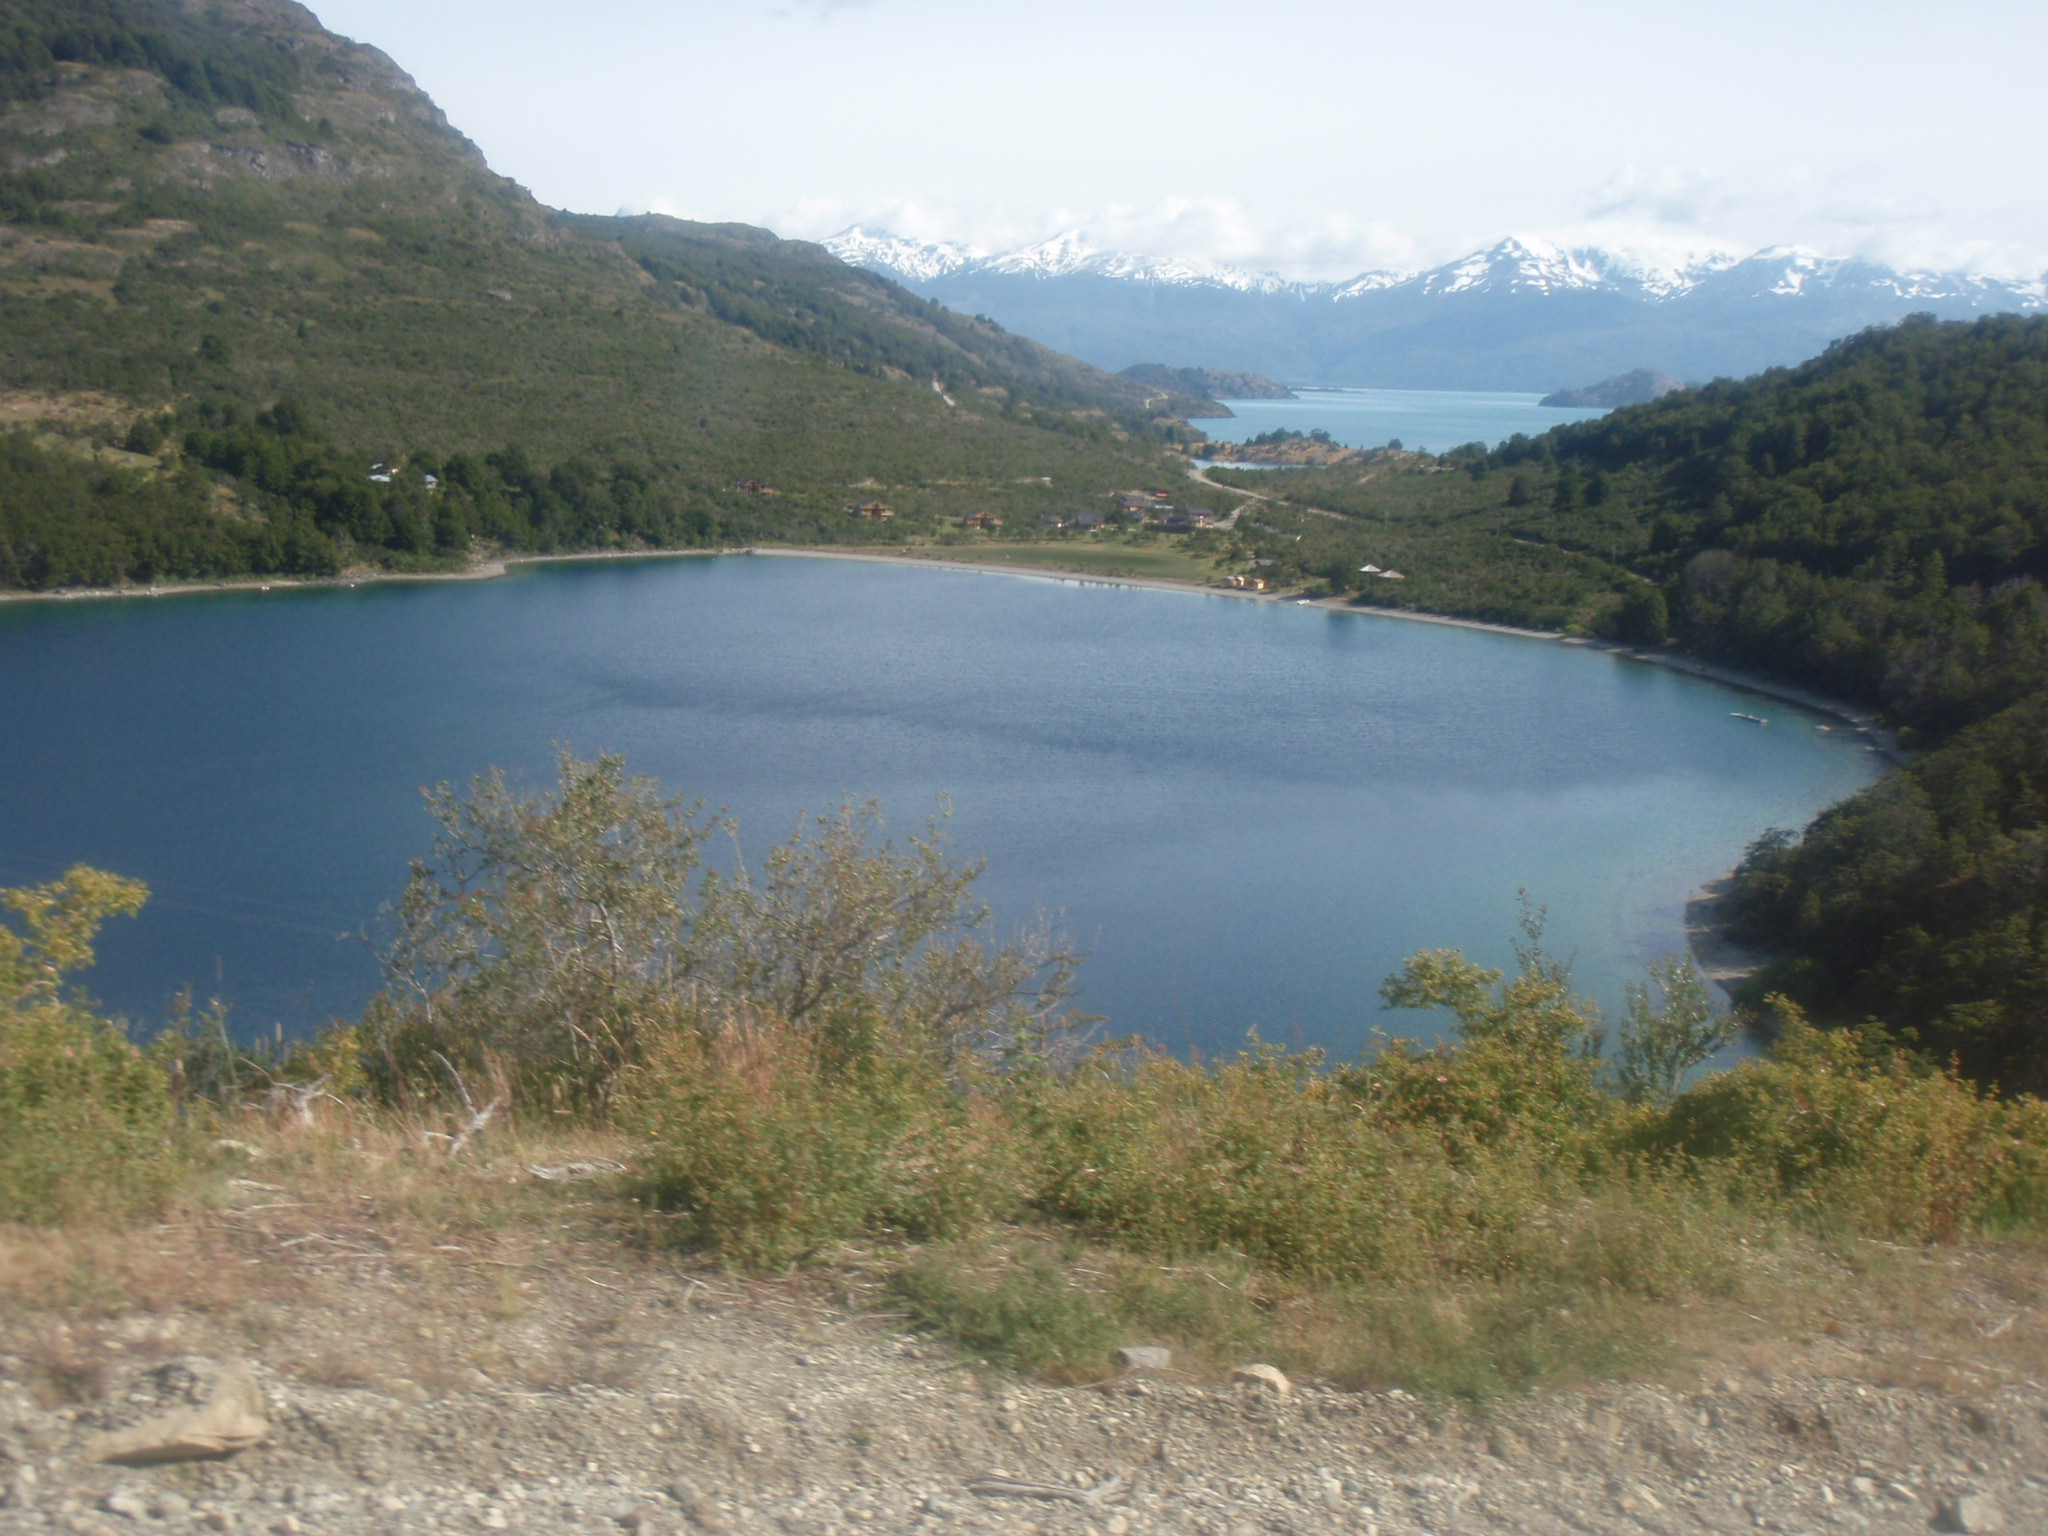 Lago Bertrand and Lago Carrero in background - view from busride to Coyhaique